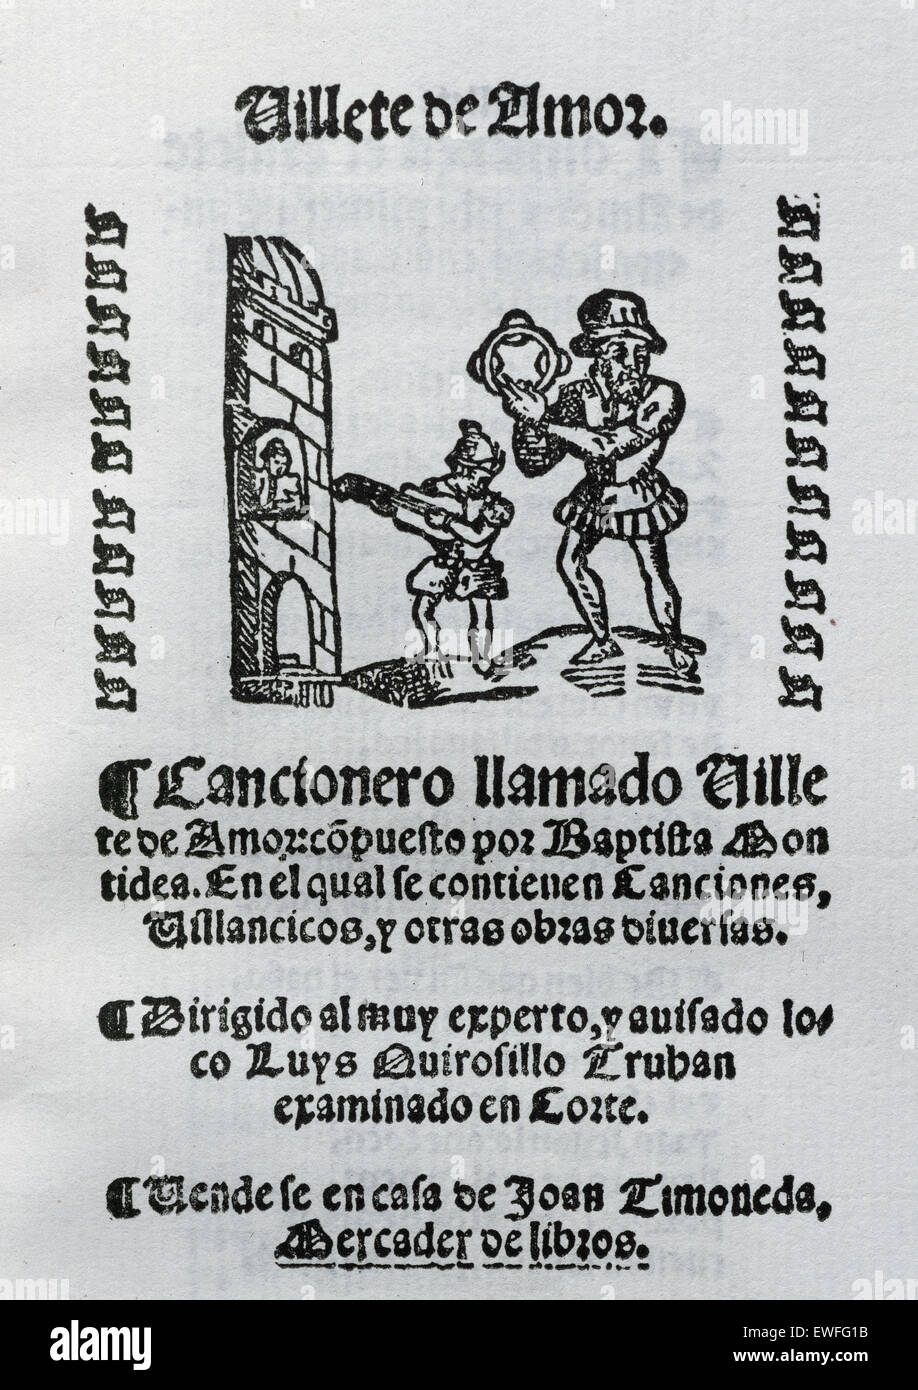 Villete de Amor by Baptista Montidea. Song book. Addressed to Luys Quirosillo Truhan. Stock Photo